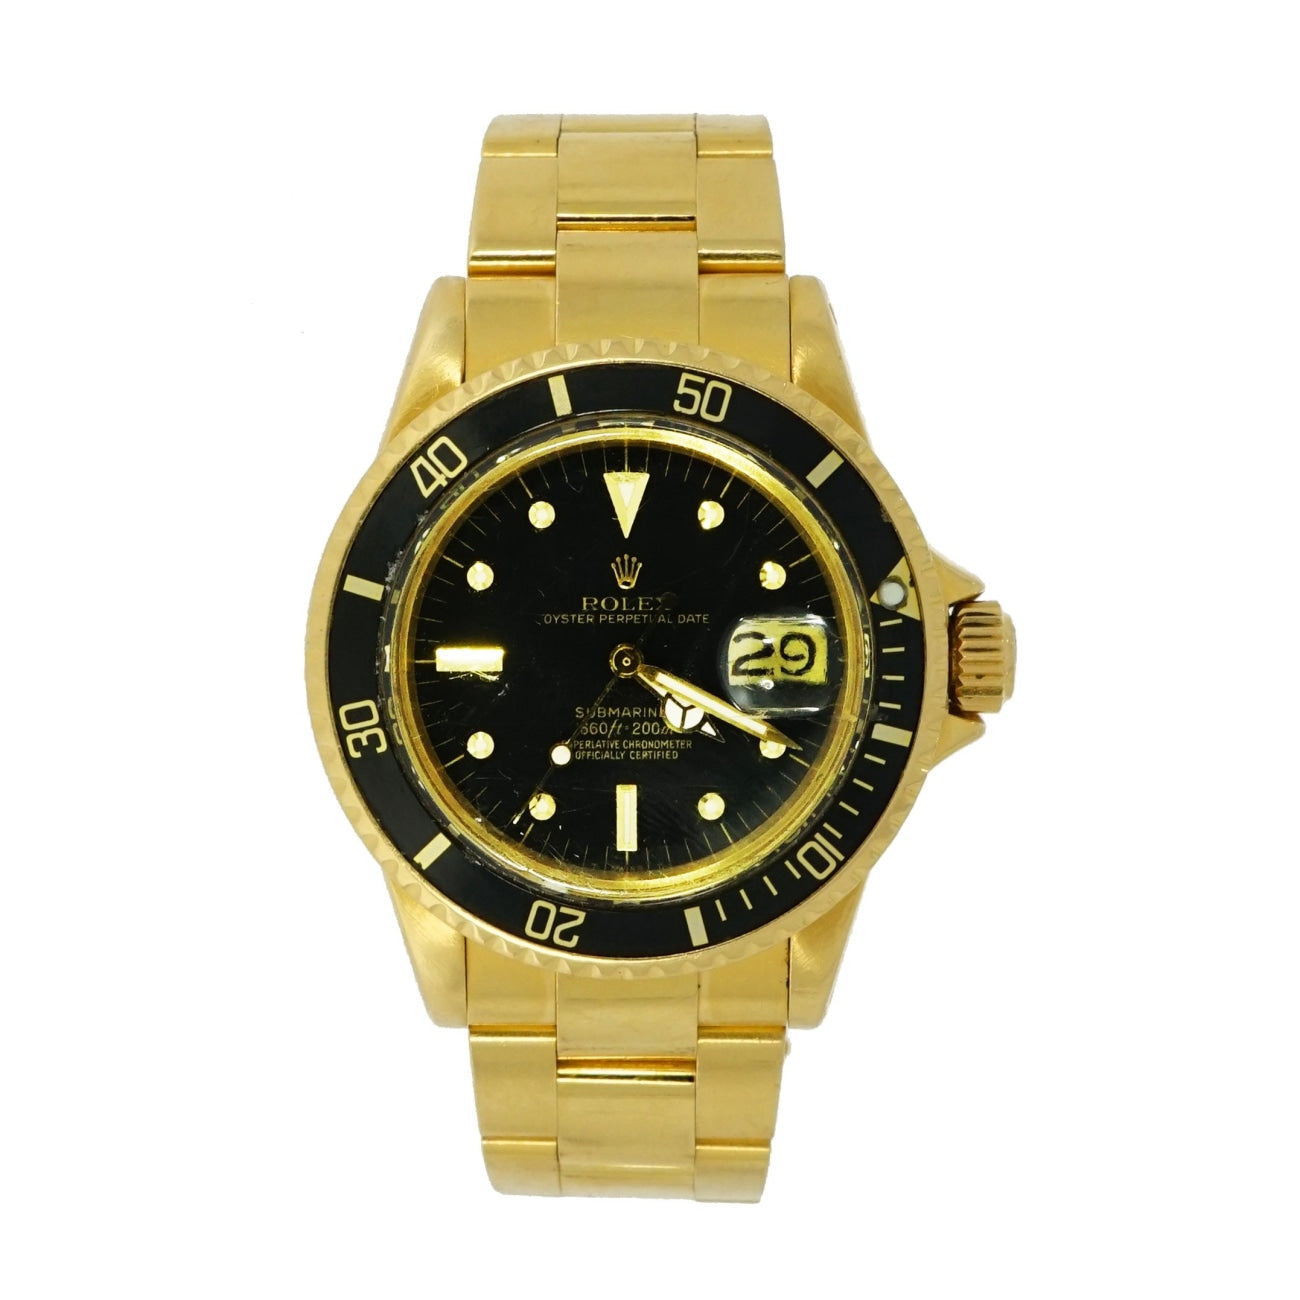 Pre-Owned Rolex Pre-Owned Watches - Submariner 1680 | Manfredi Jewels